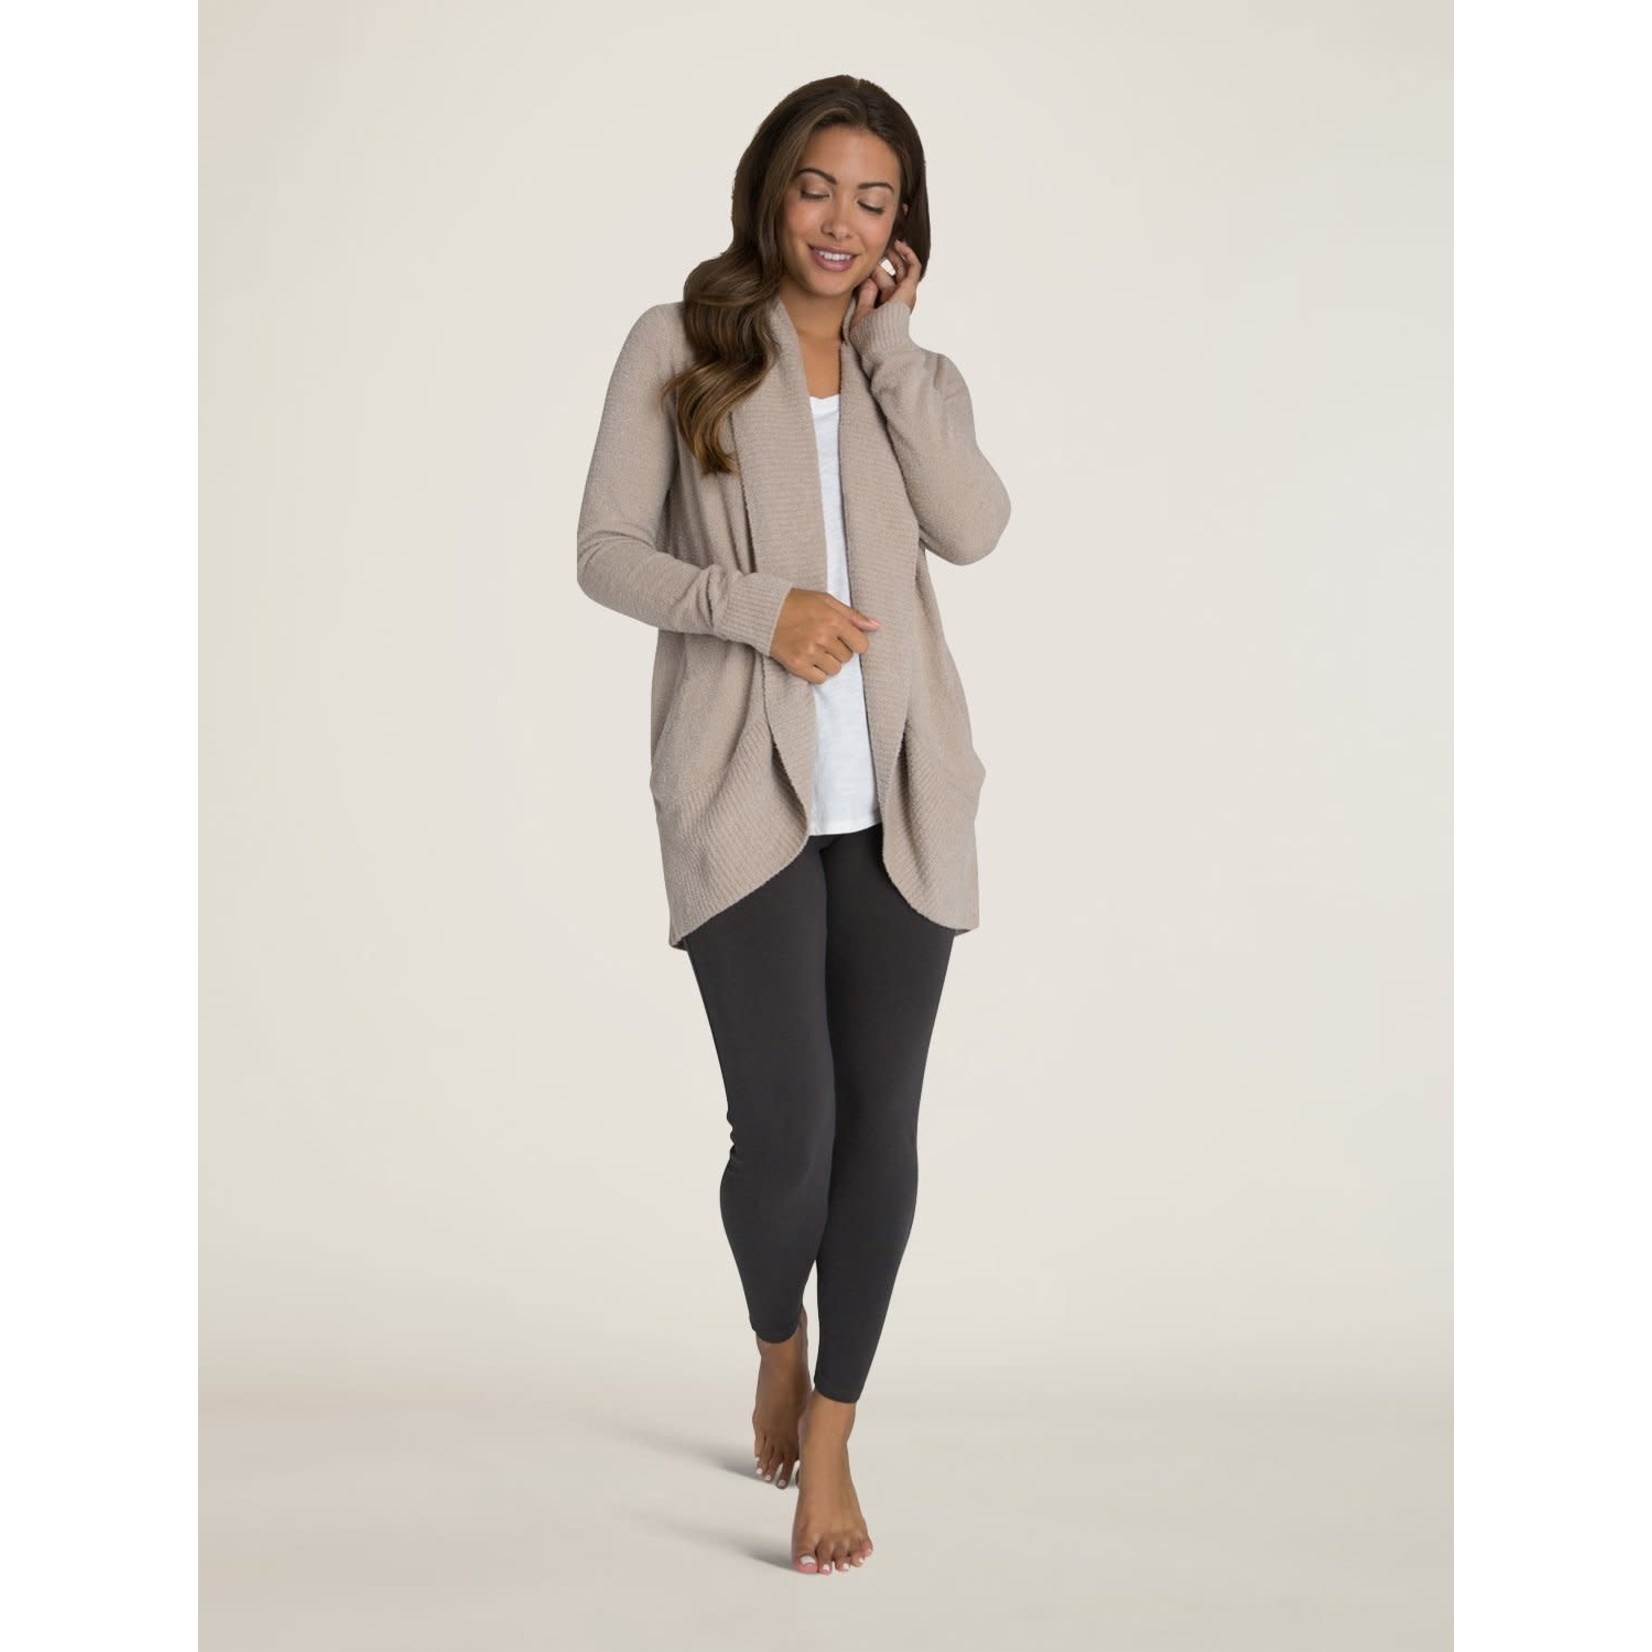 Barefoot Dreams CozyChic Lite Circle Cardi in Taupe